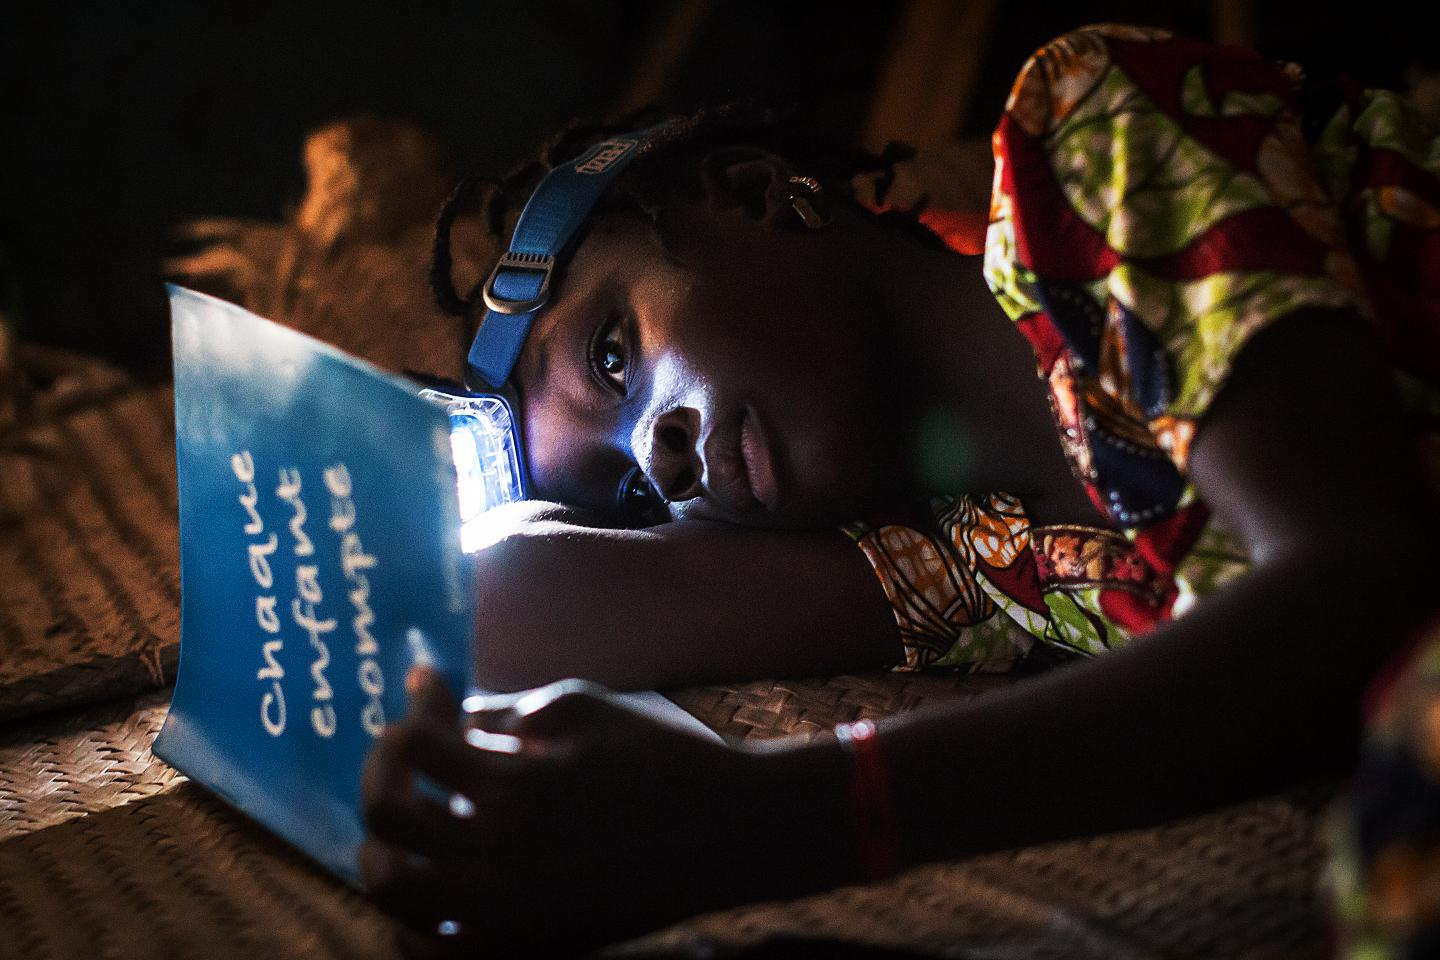 "Koumbéré Sankaré, 12, from Diambadougou village about 30 km from the city of Mopti, revises her lessons at night using a head lamp.  Koumbéré attends a community learning center (CLC) following the closure of her school due to insecurity. Thanks to Norwegian support, UNICEF and its partner Norwegian Refugee Council (NRC) have supported learning for 7500 children who are no longer in school because of school closures in the regions of Mopti, Timbuktu, Gao and Segou.   ""Even though our school is closed, thank"